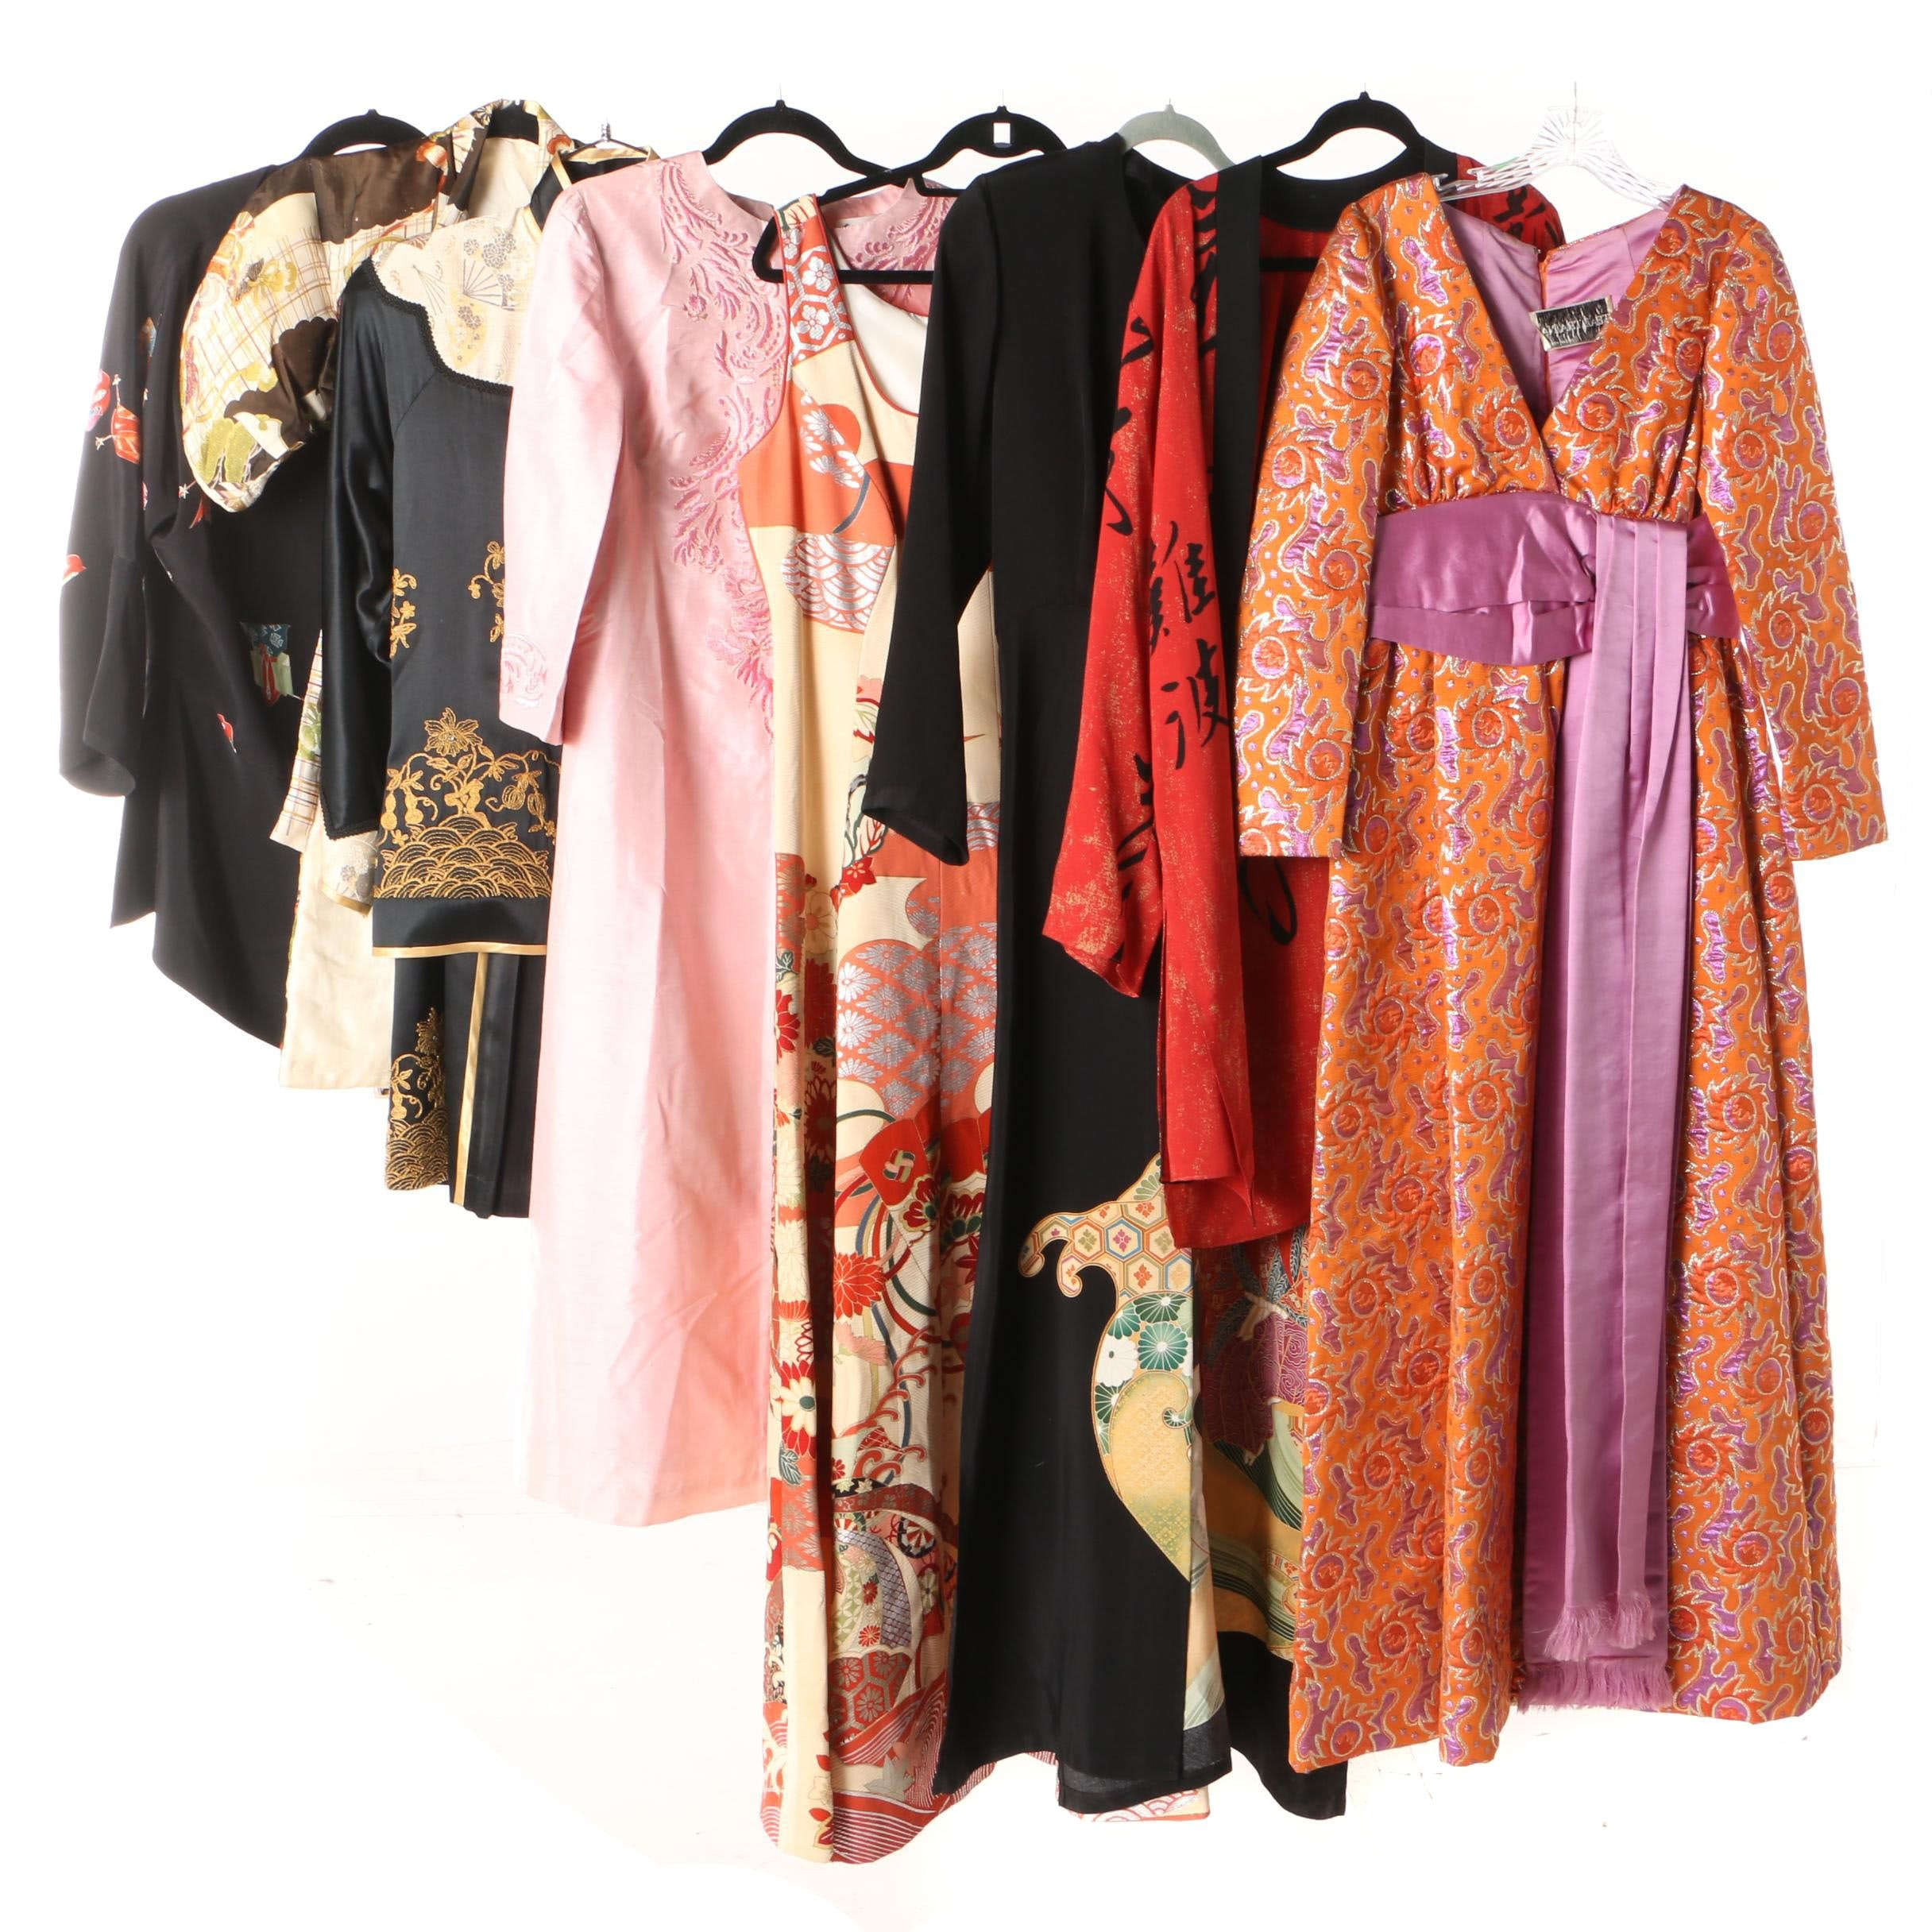 East Asian Style Clothing, Evening Dresses and Children's Haori, Vintage